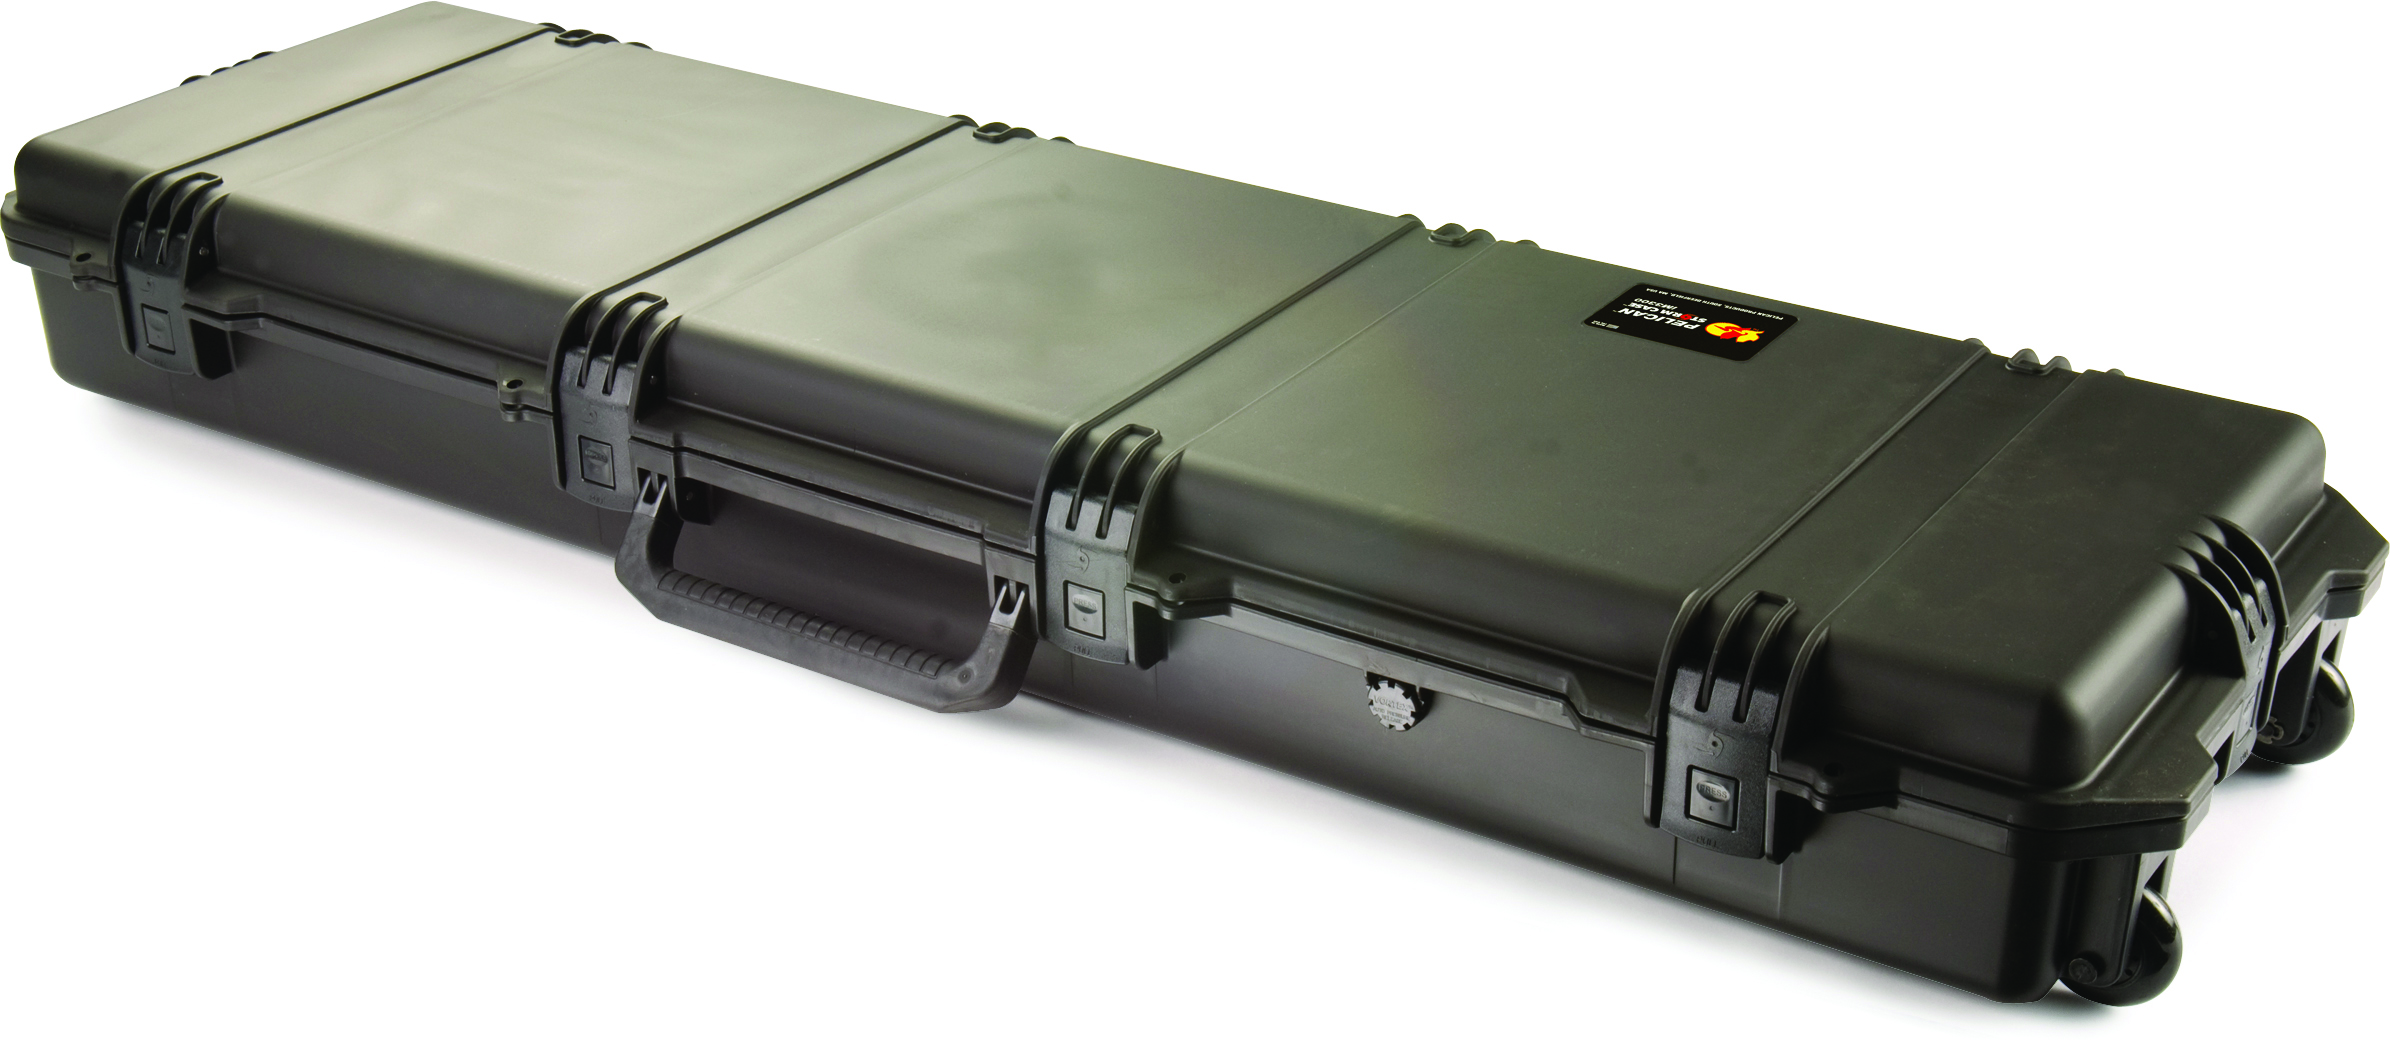 //www.gundogmag.com/files/top-waterfowl-clothing-for-this-season/pelican_long_case.jpg